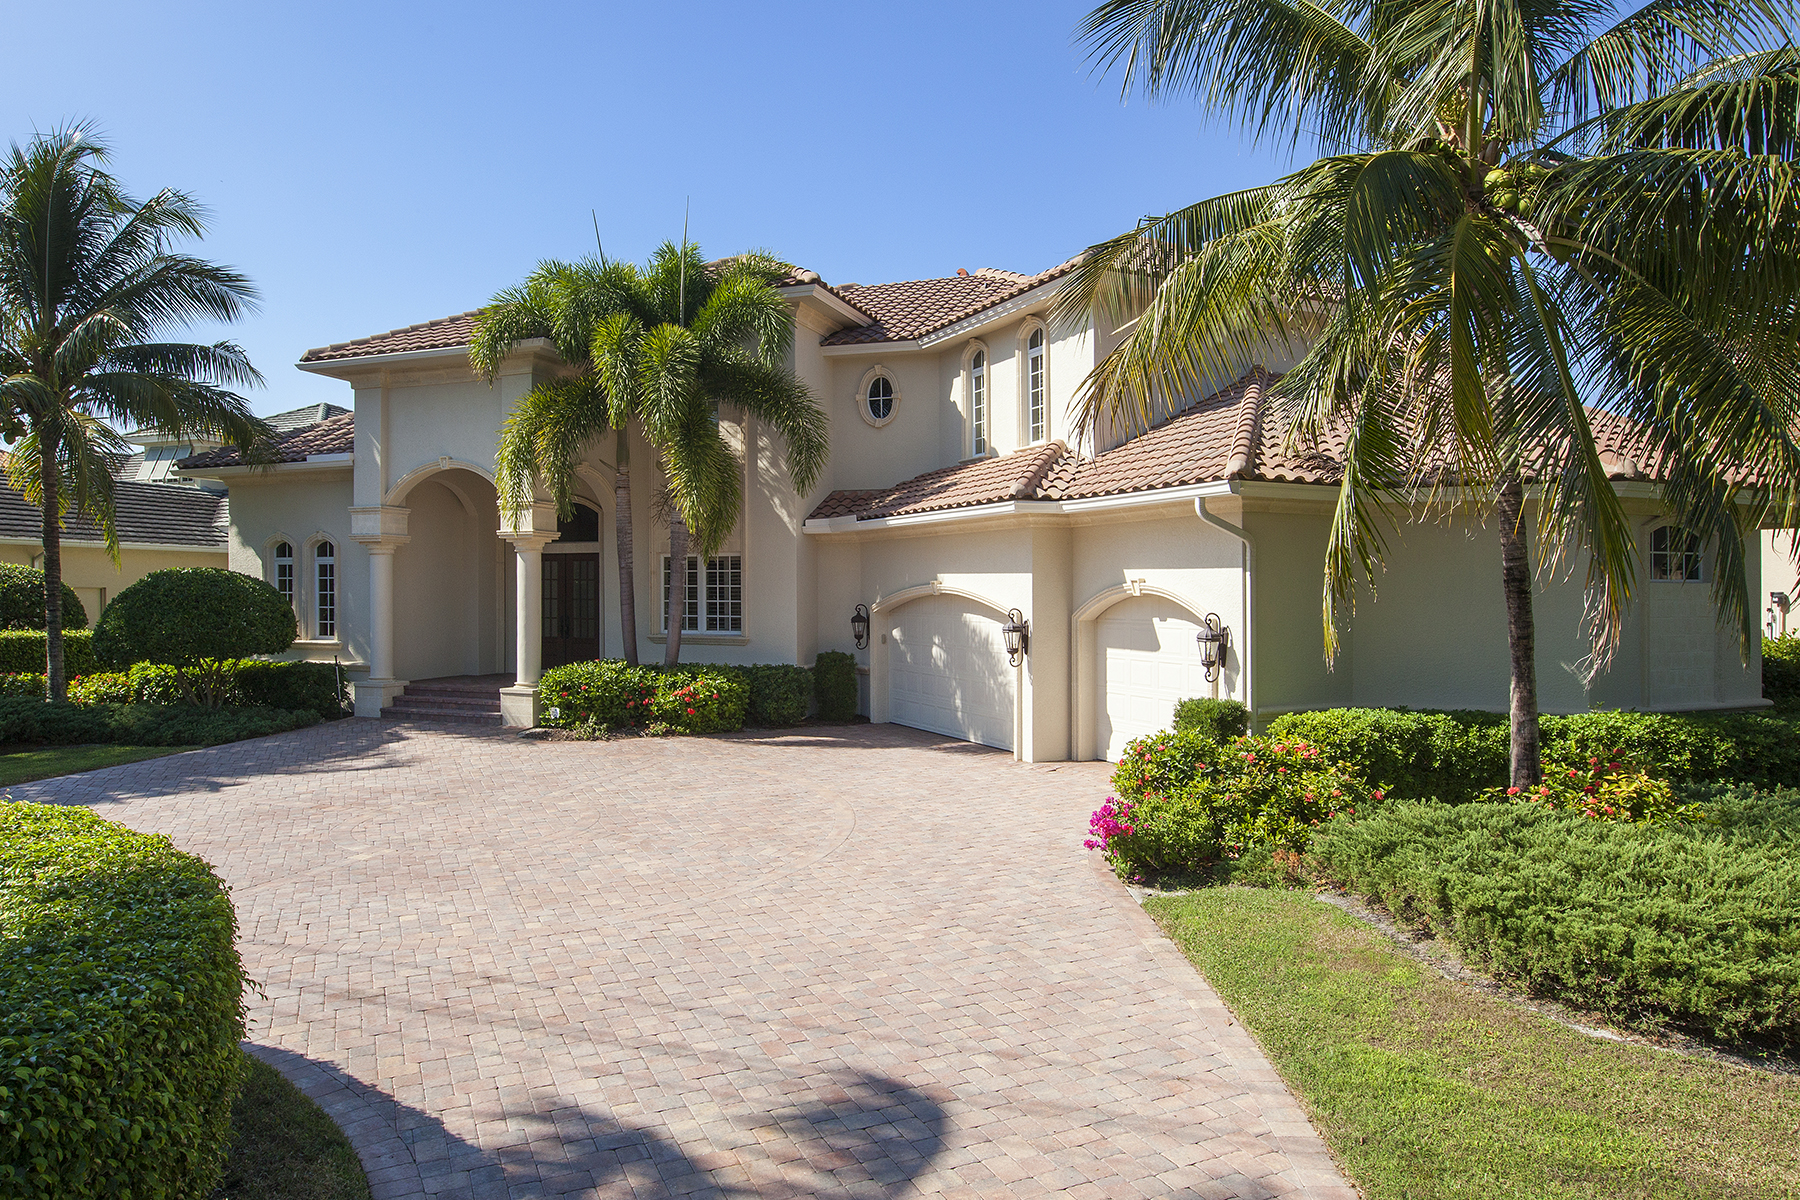 Single Family Home for Sale at MOORINGS 1831 Crayton Rd, Naples, Florida 34102 United States